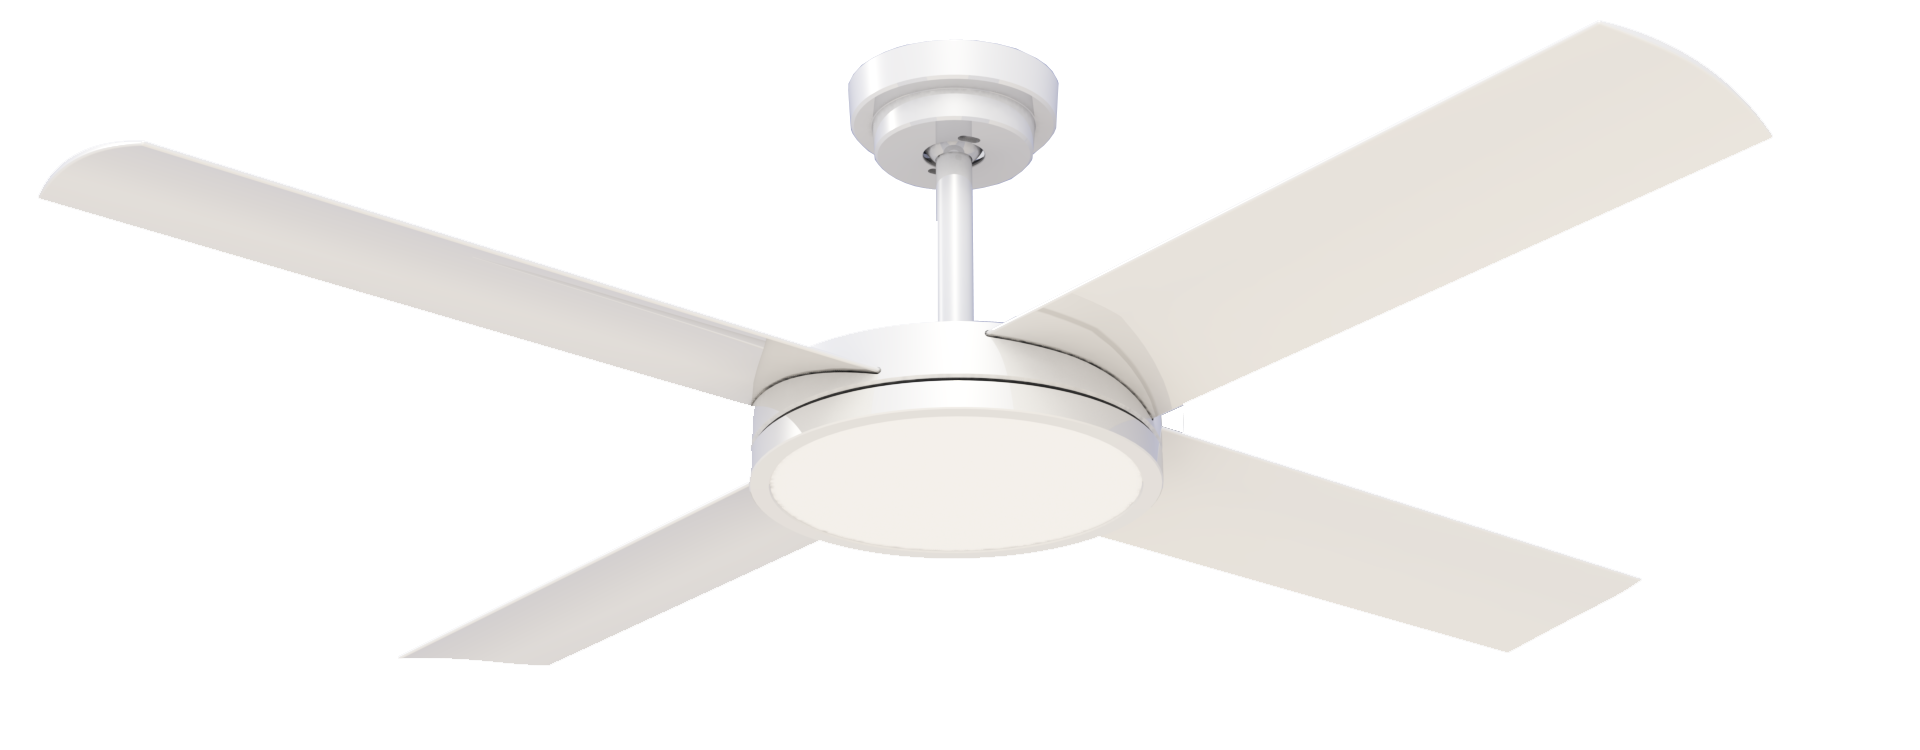 "Revolution 3 with 24W LED Light (Dimmable) 52"" Ceiling Fan - White"